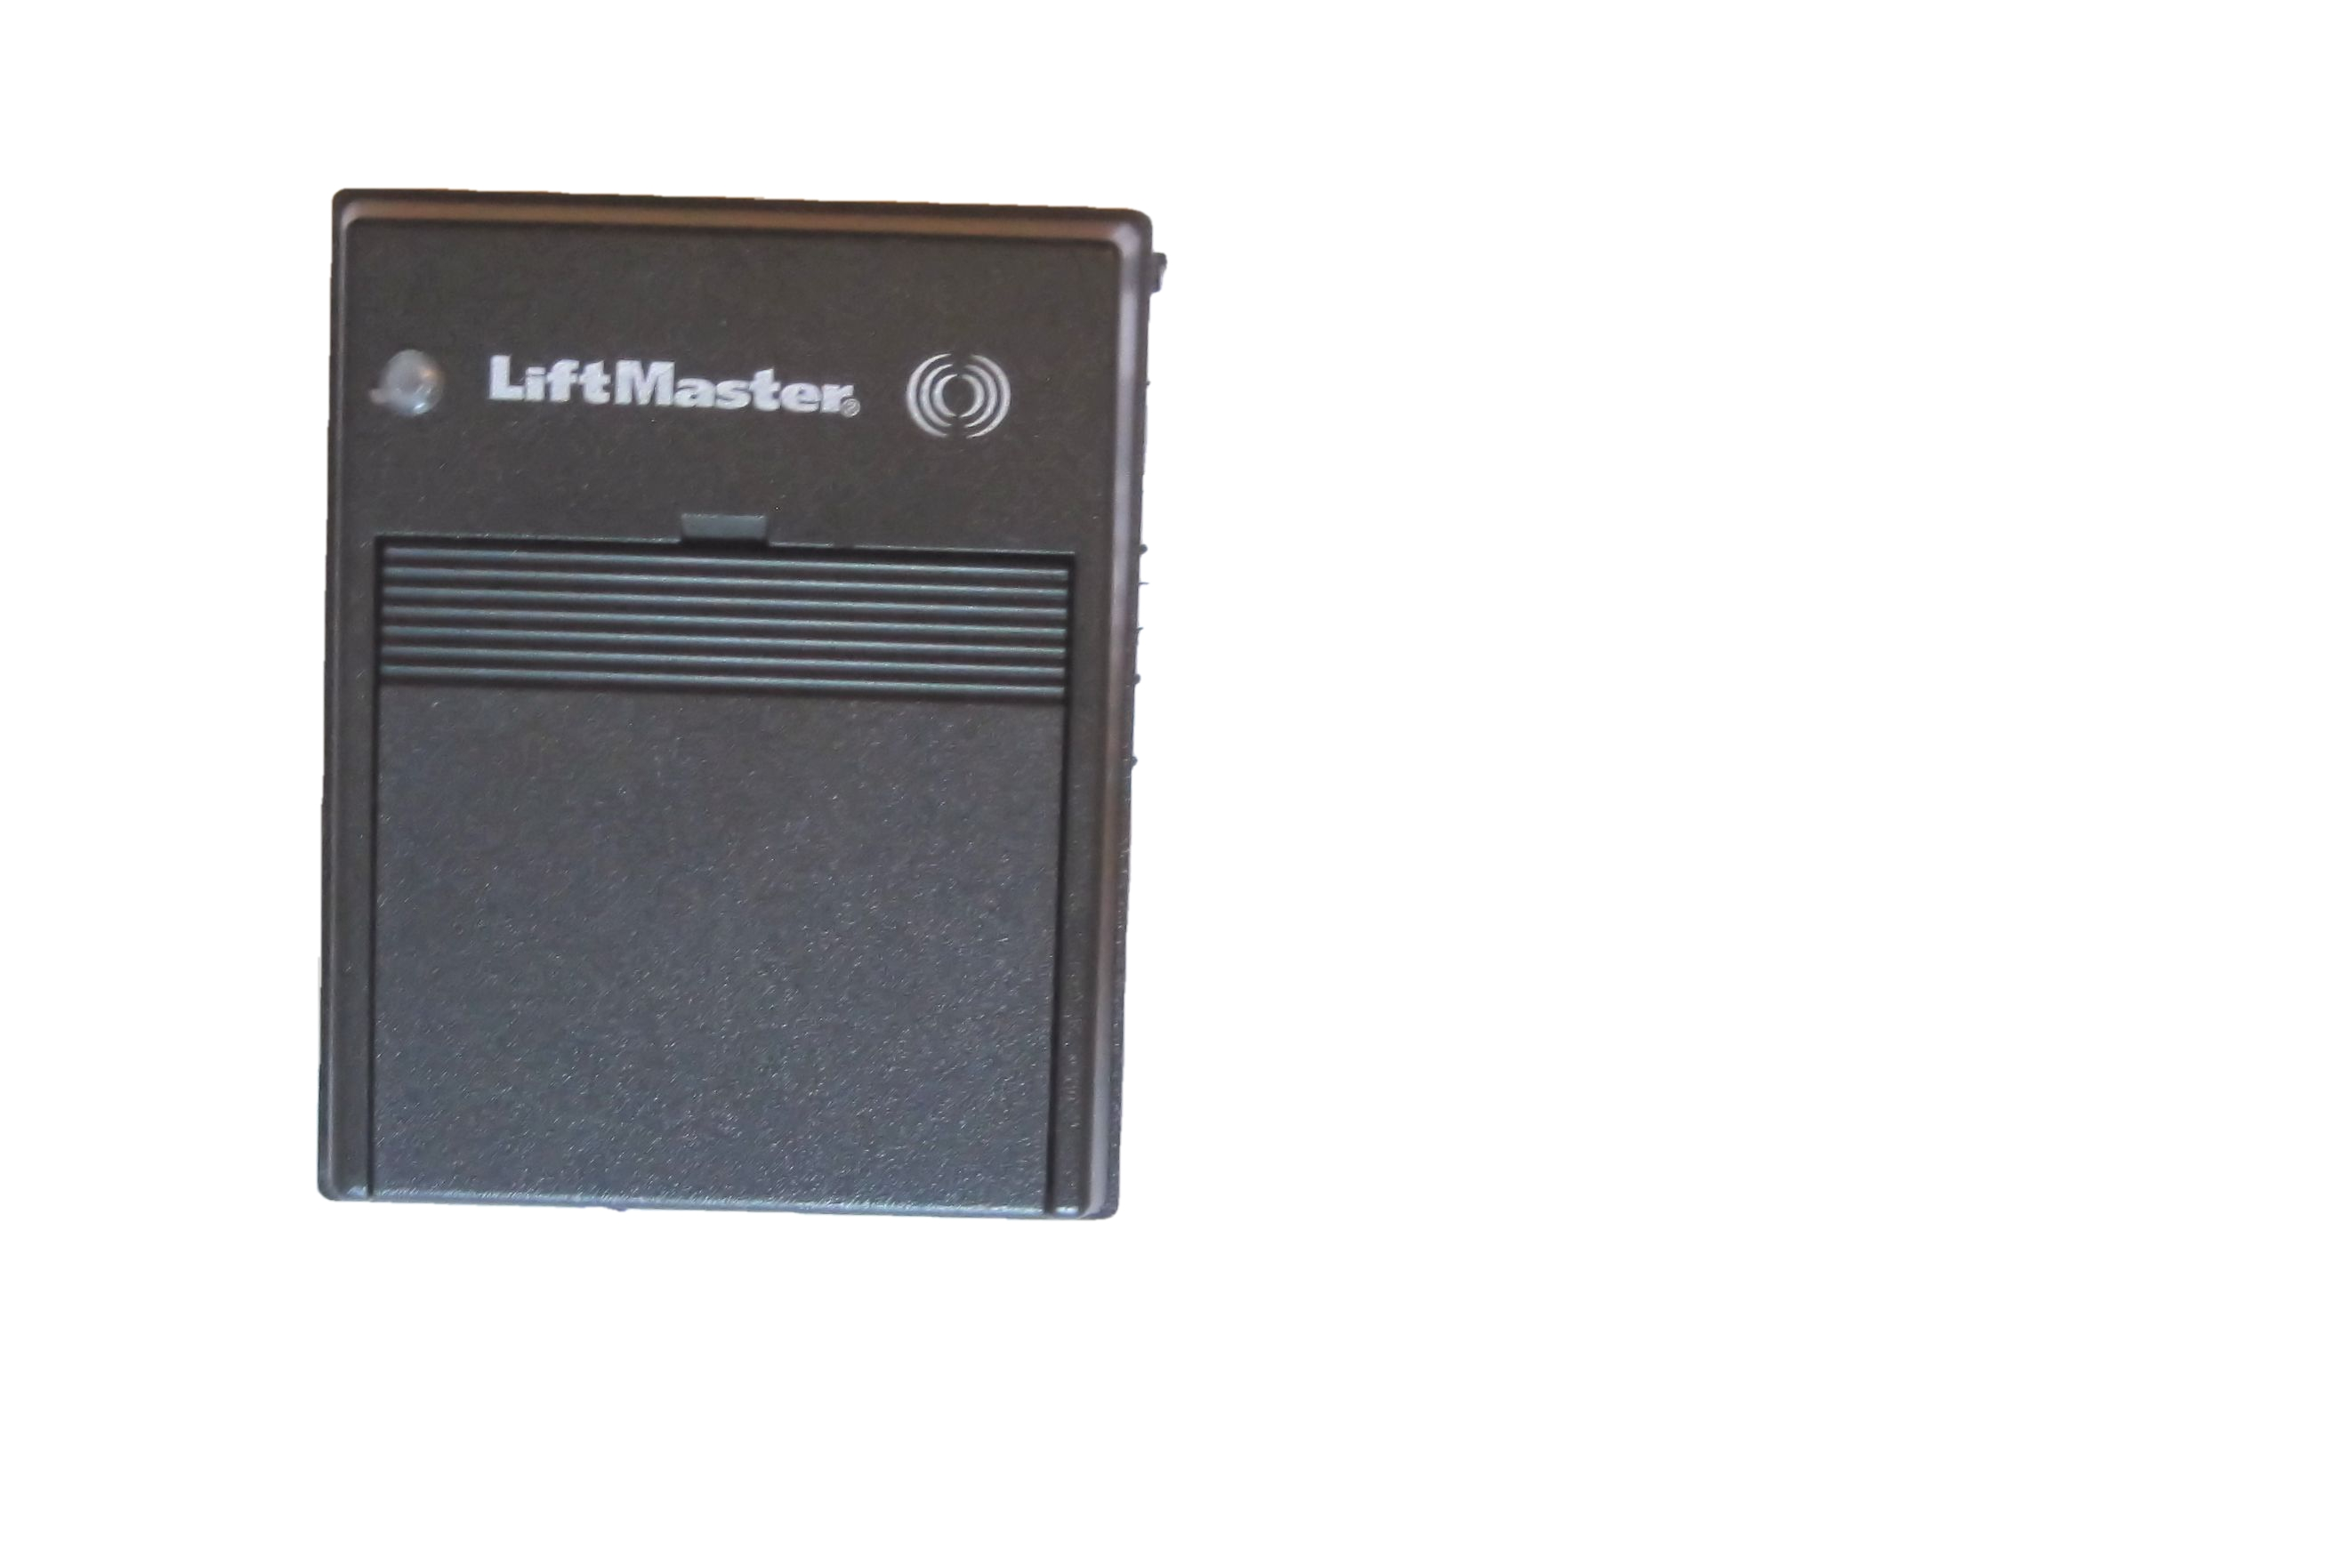 365LM Liftmaster Garage Door Opener Radio Receiver